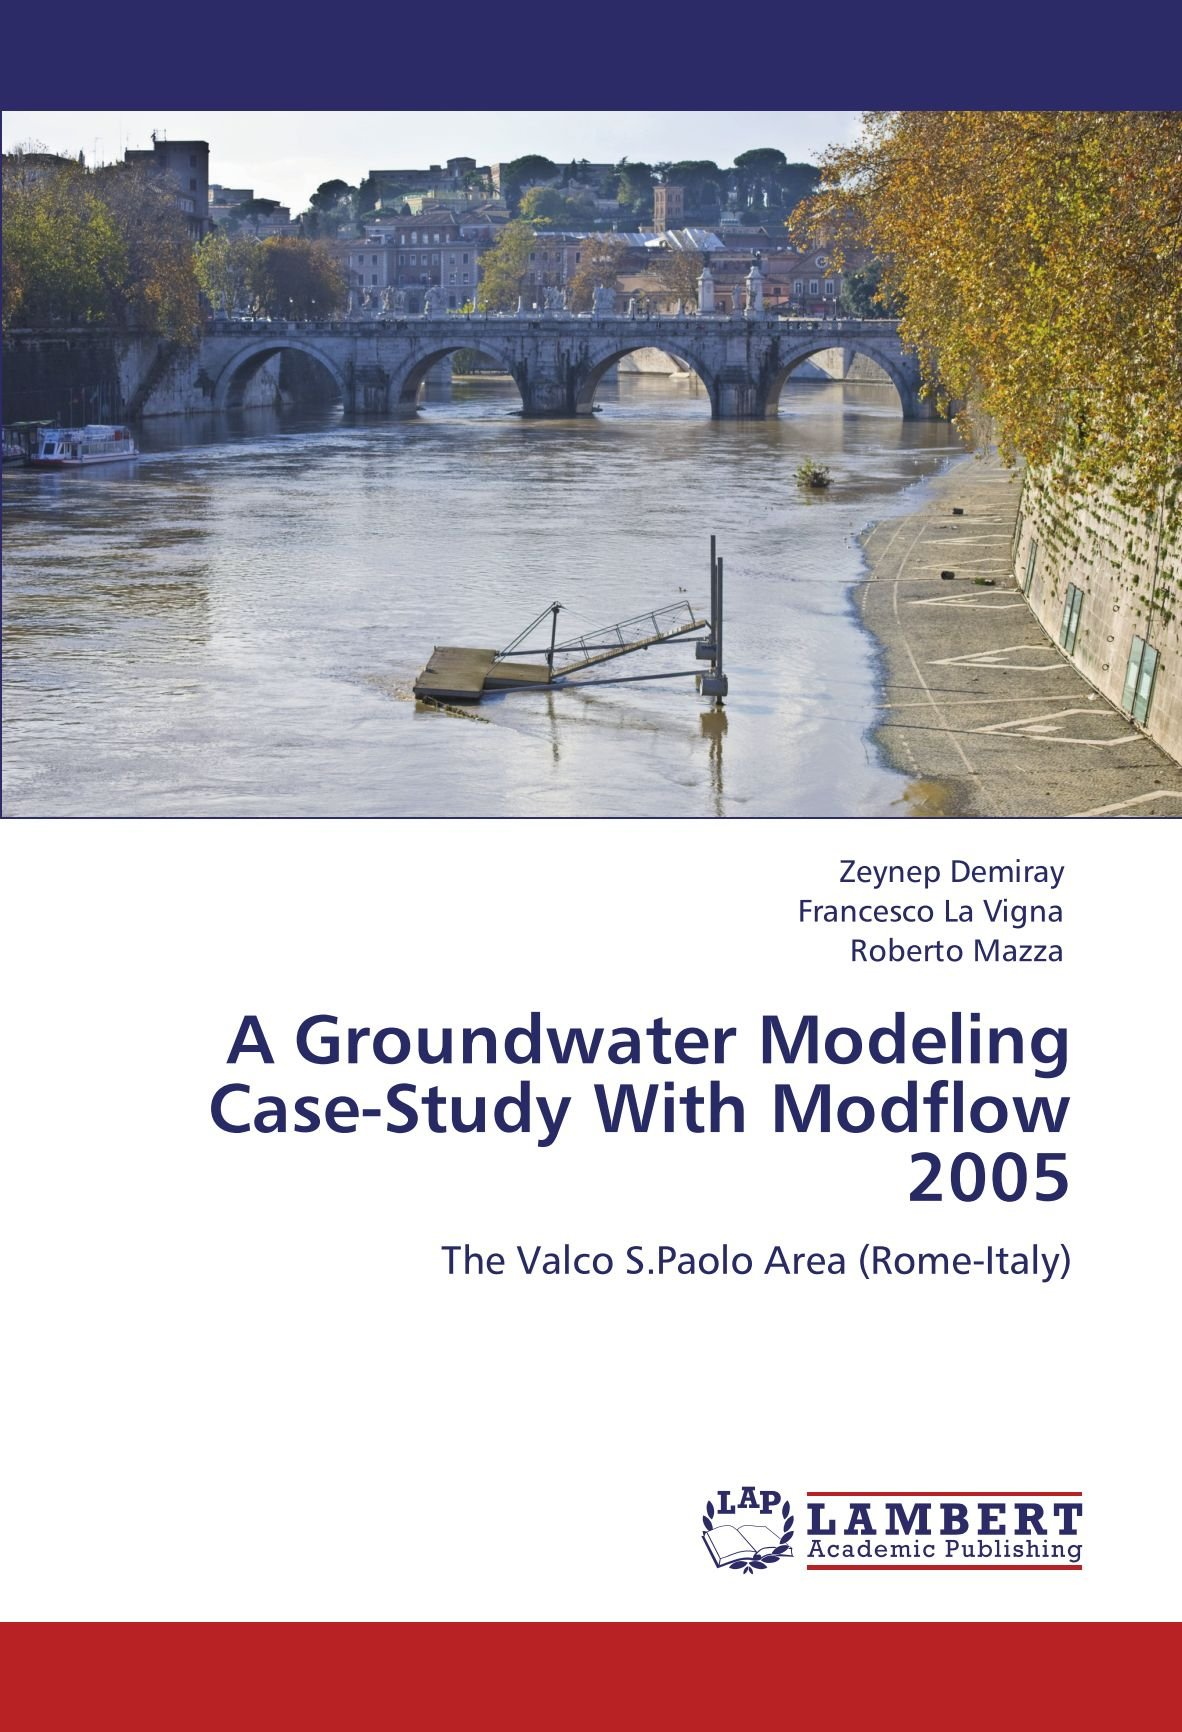 Download A Groundwater Modeling Case-Study With Modflow 2005: The Valco S.Paolo Area (Rome-Italy) ebook